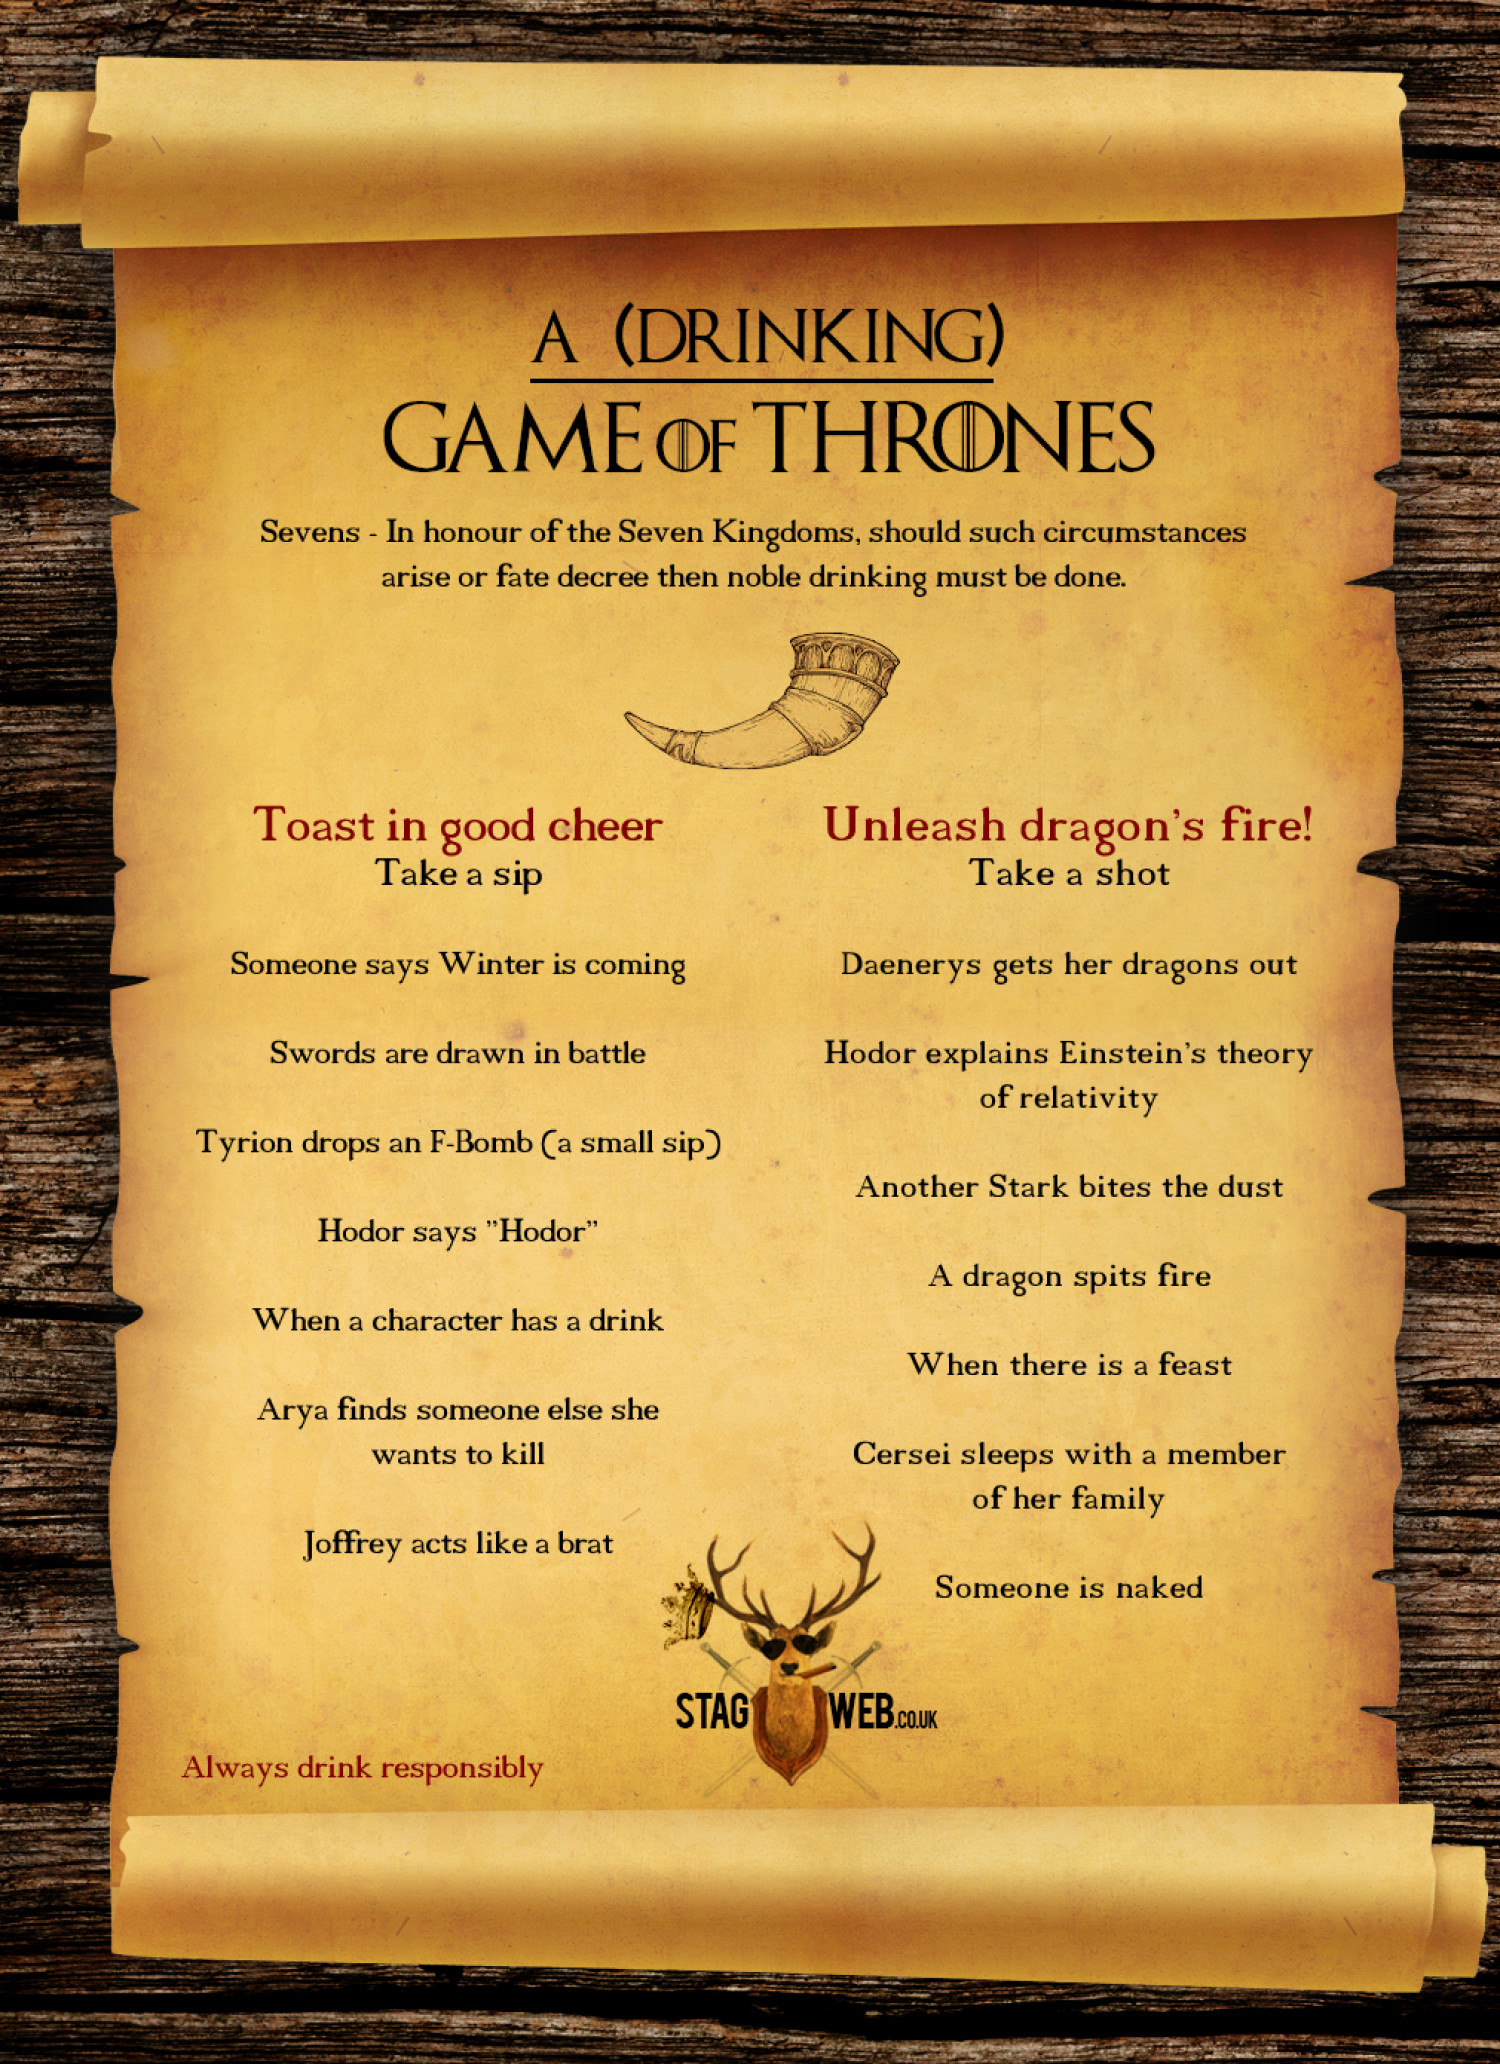 Drinking Game of Thrones Infographic